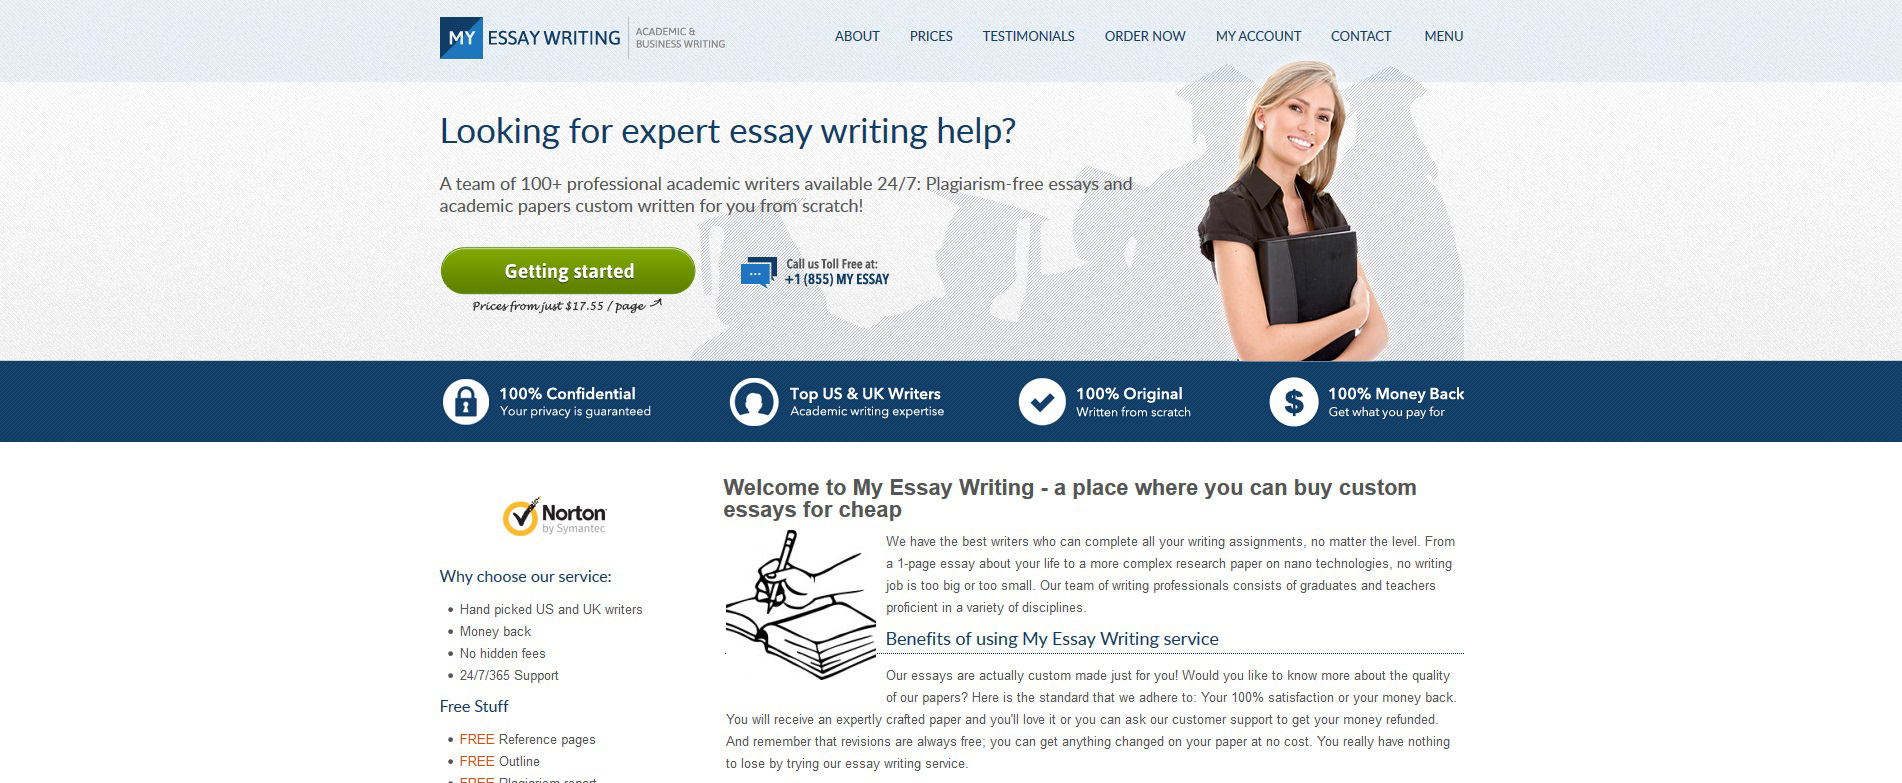 myessaywriting.com